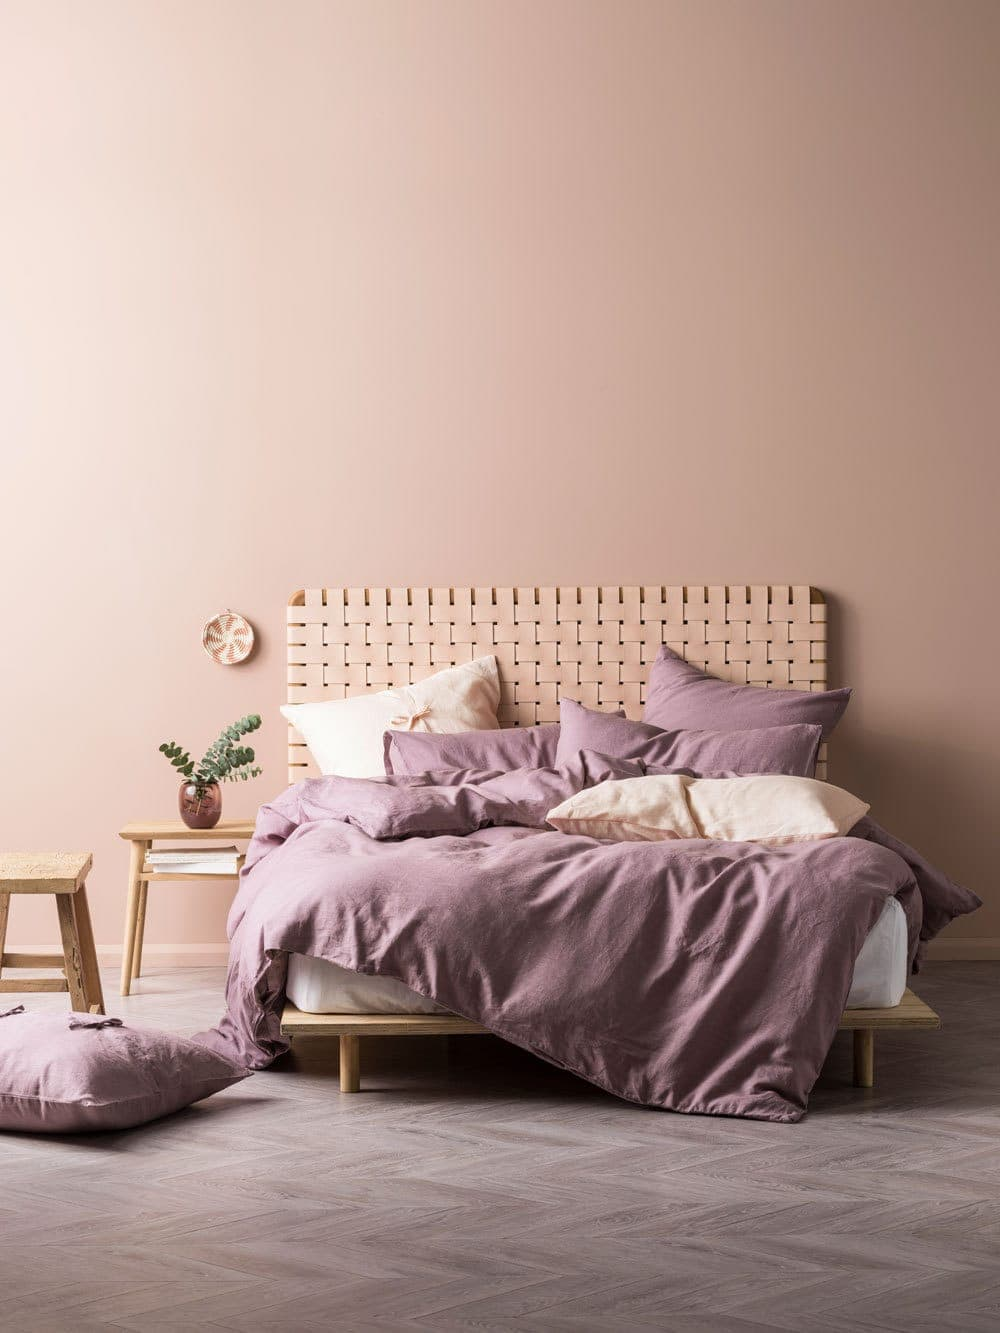 nimes bedding from linen house in dusty pink bedroom ideas